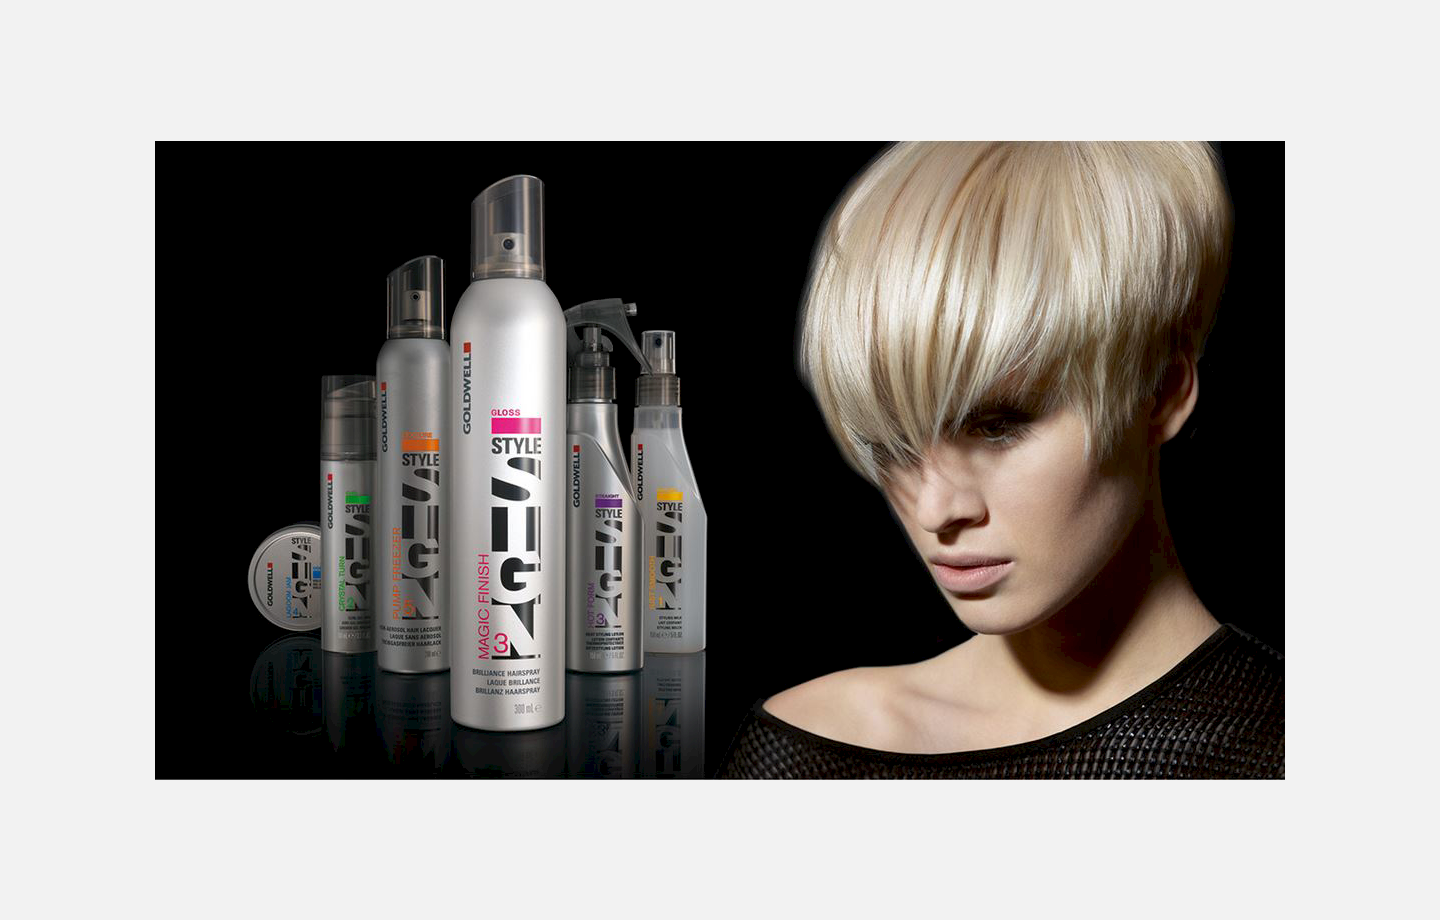 Goldwell Style Sign Styling Products image